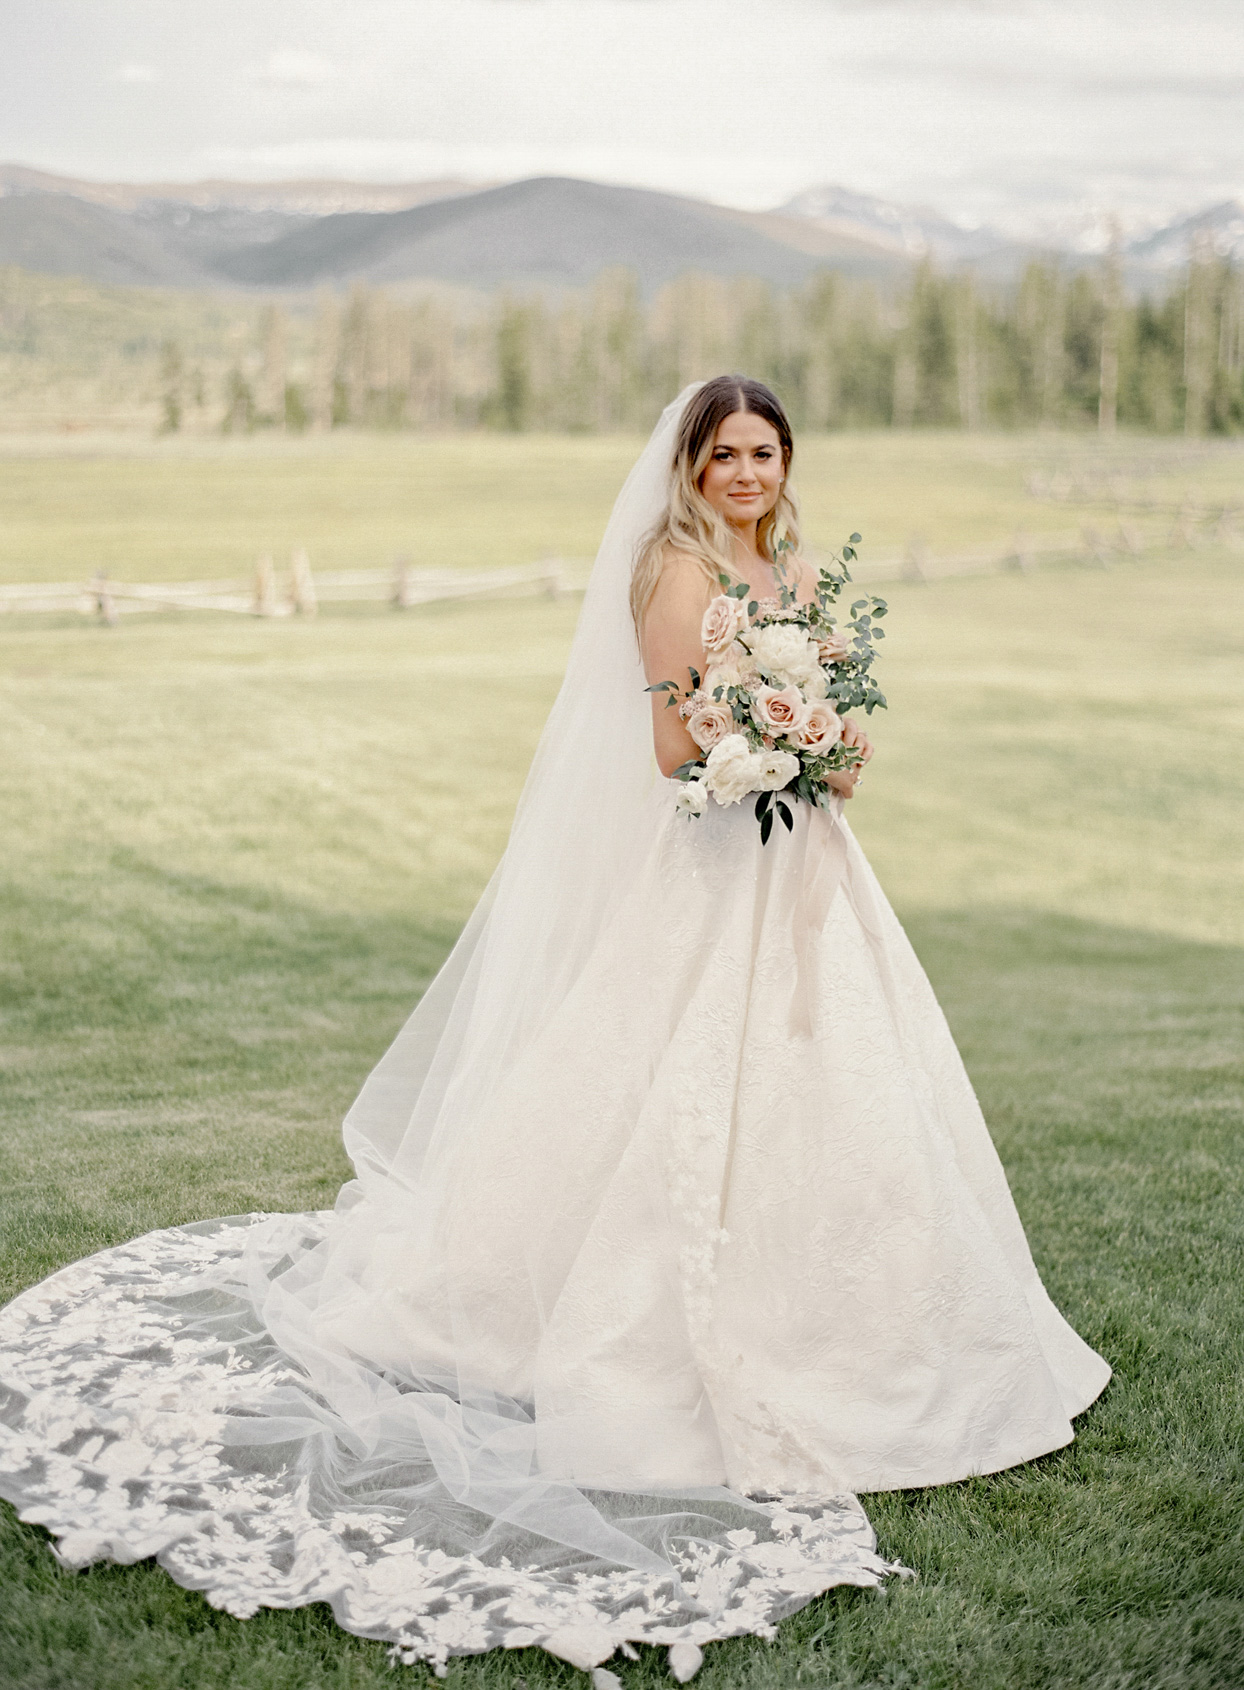 bride in white dress standing in field with mountain backdrop